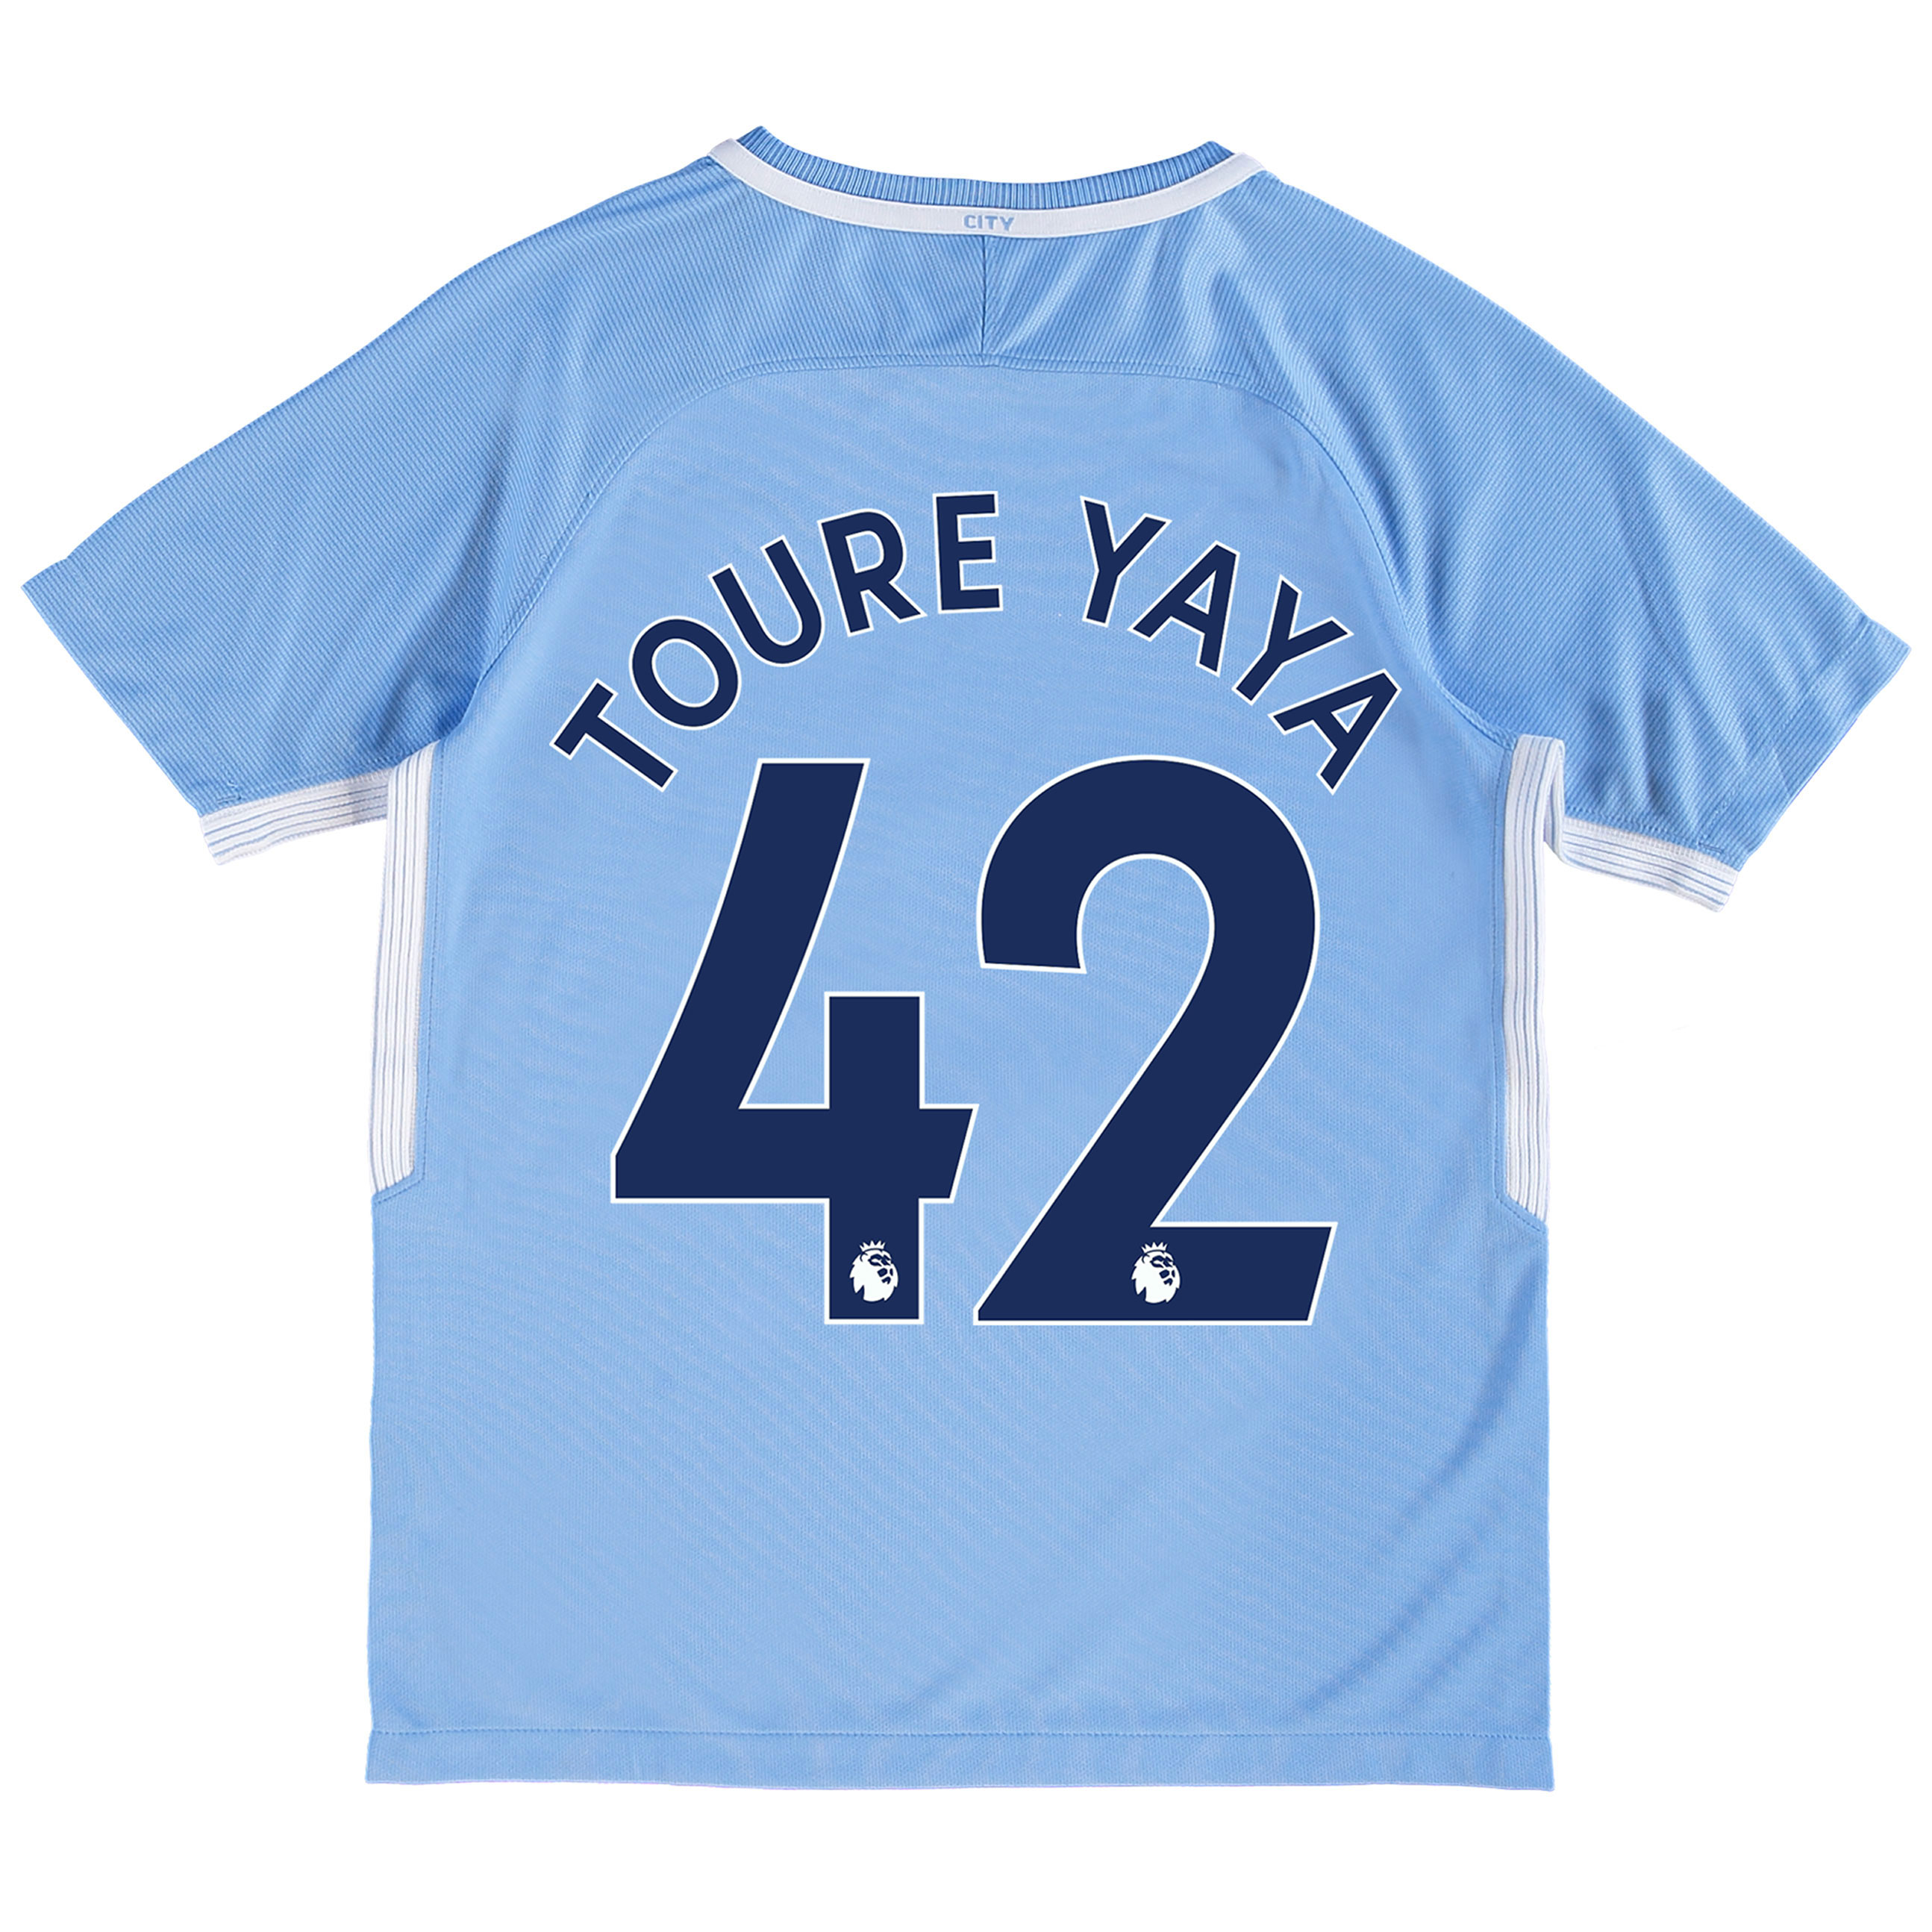 Manchester City Home Stadium Shirt 2017-18 - Kids with Toure Yaya 42 p